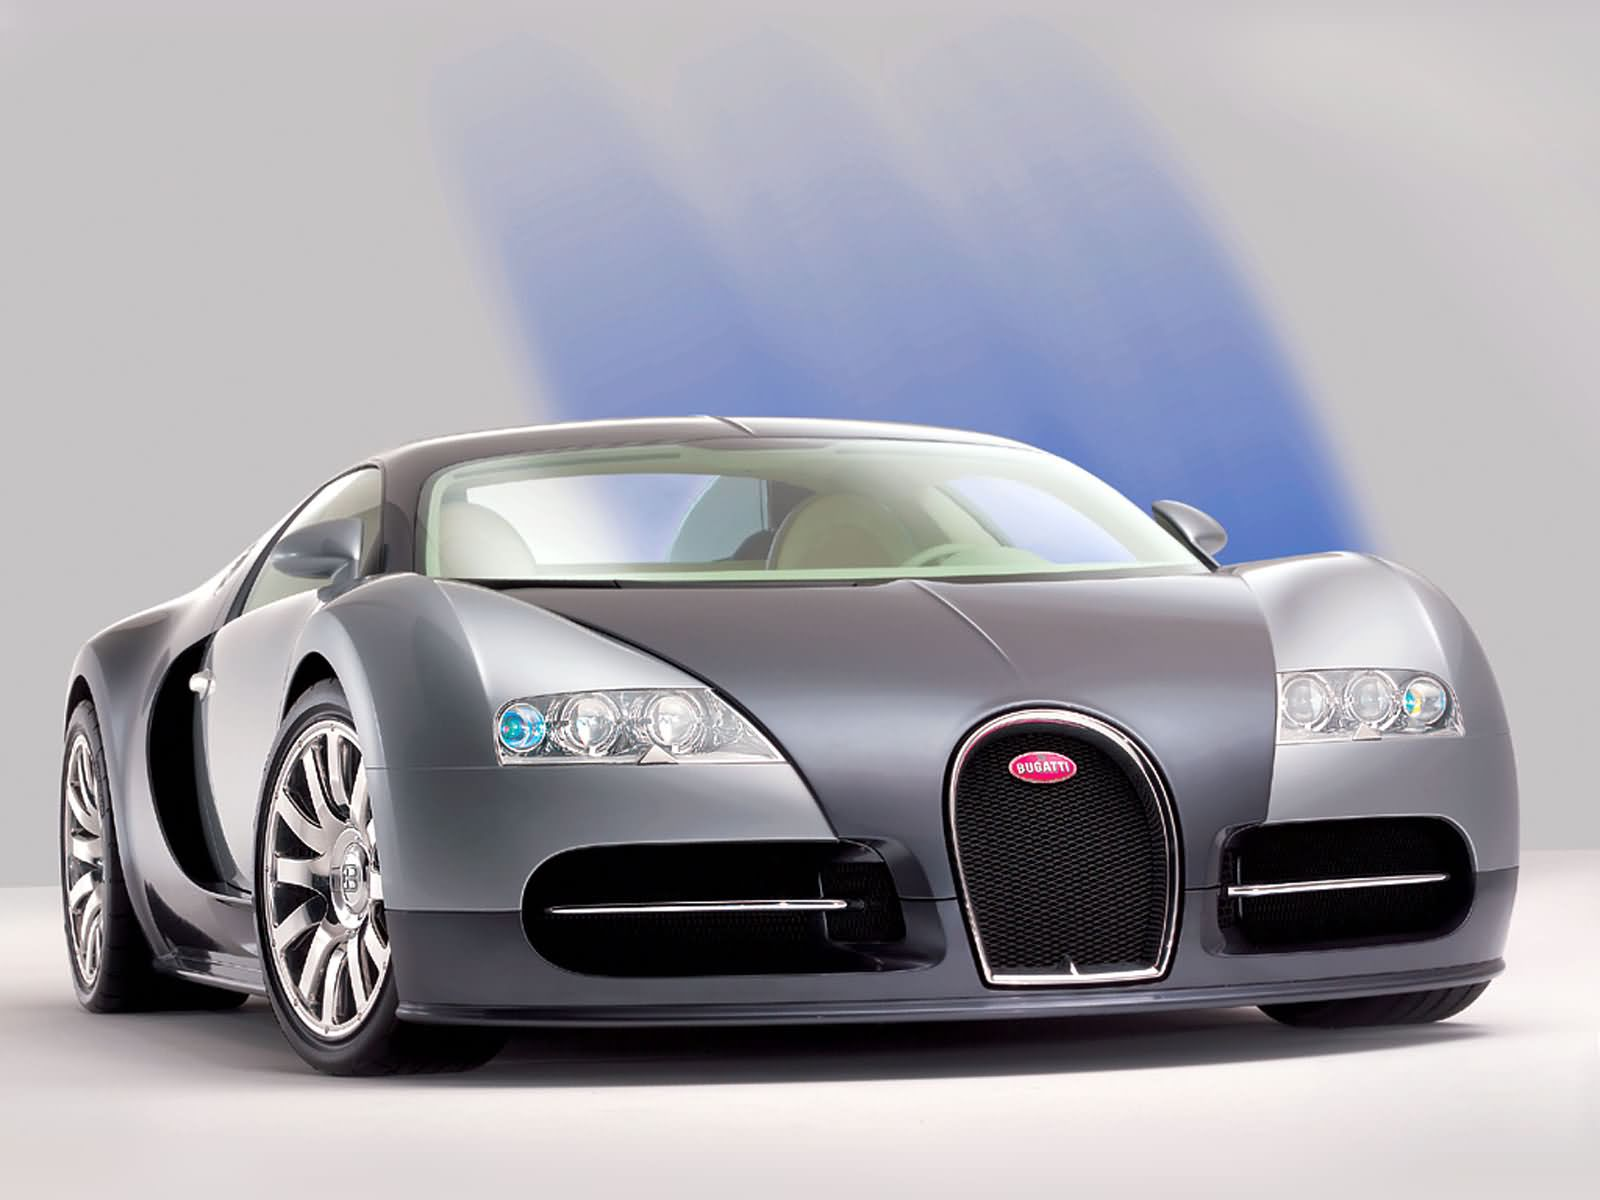 bugatti-veyron-wallpaper%252B6 Fascinating Gran Turismo Psp Bugatti Veyron Price Cars Trend